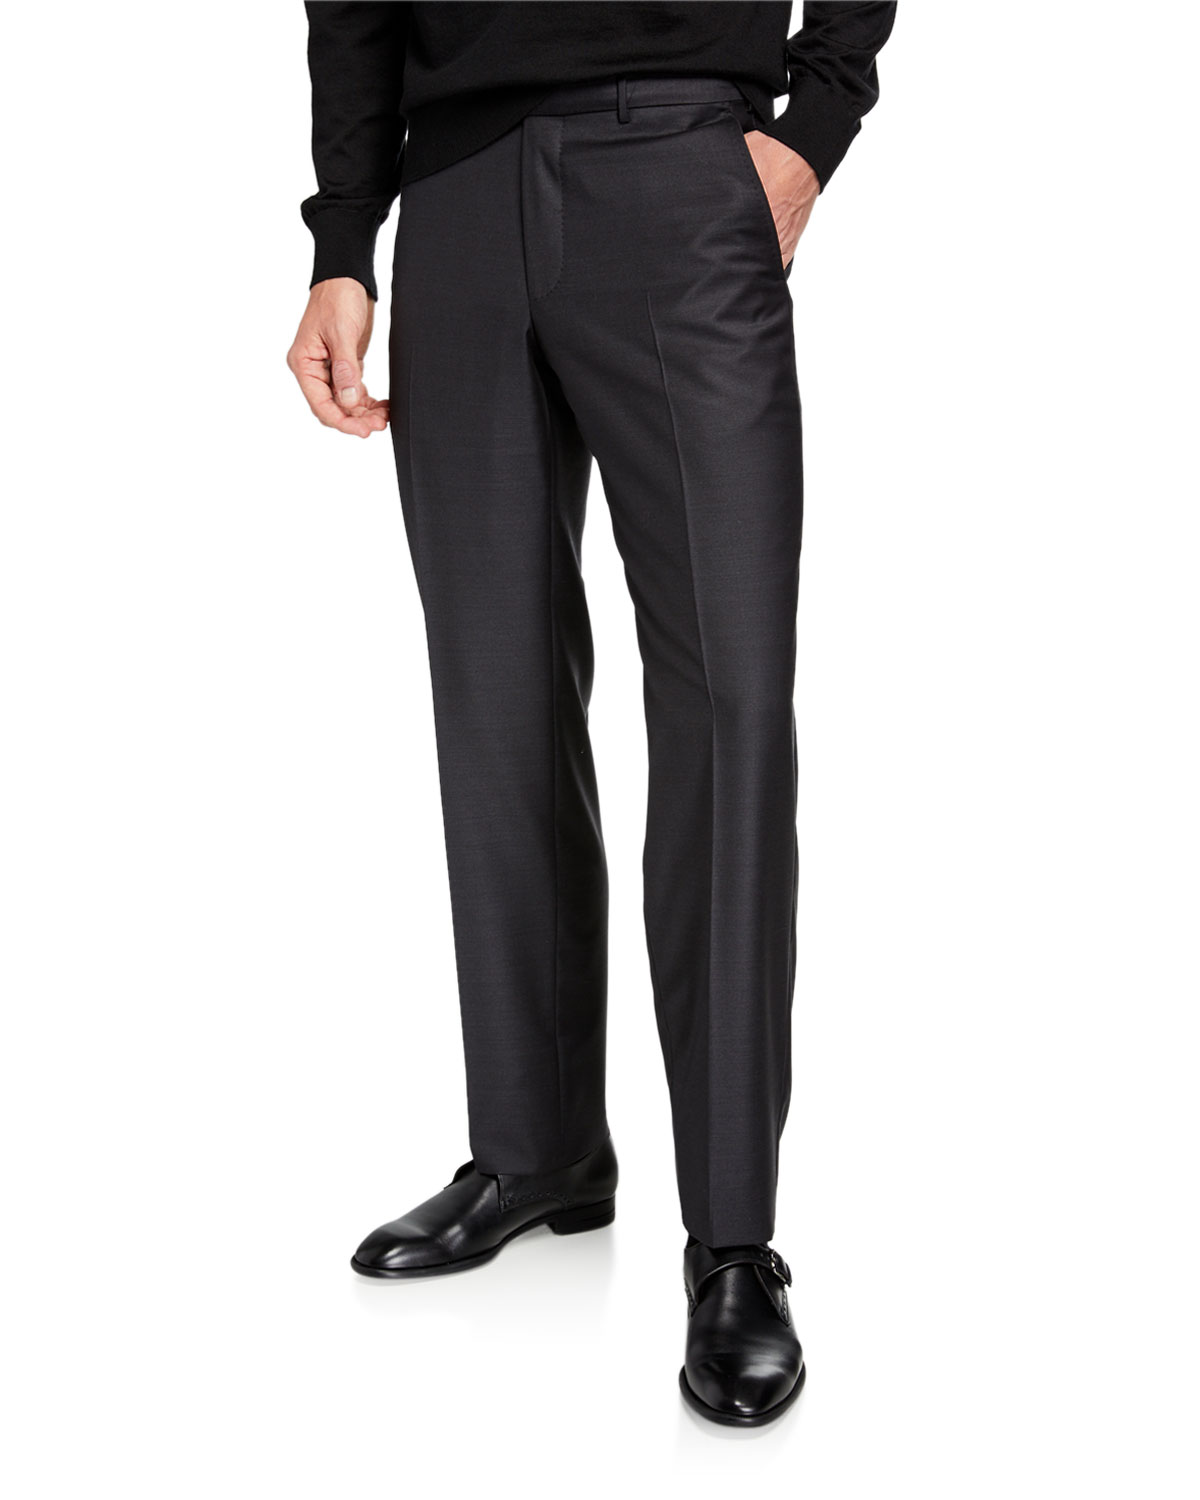 Men's Twill Straight Leg Trousers by Ermenegildo Zegna